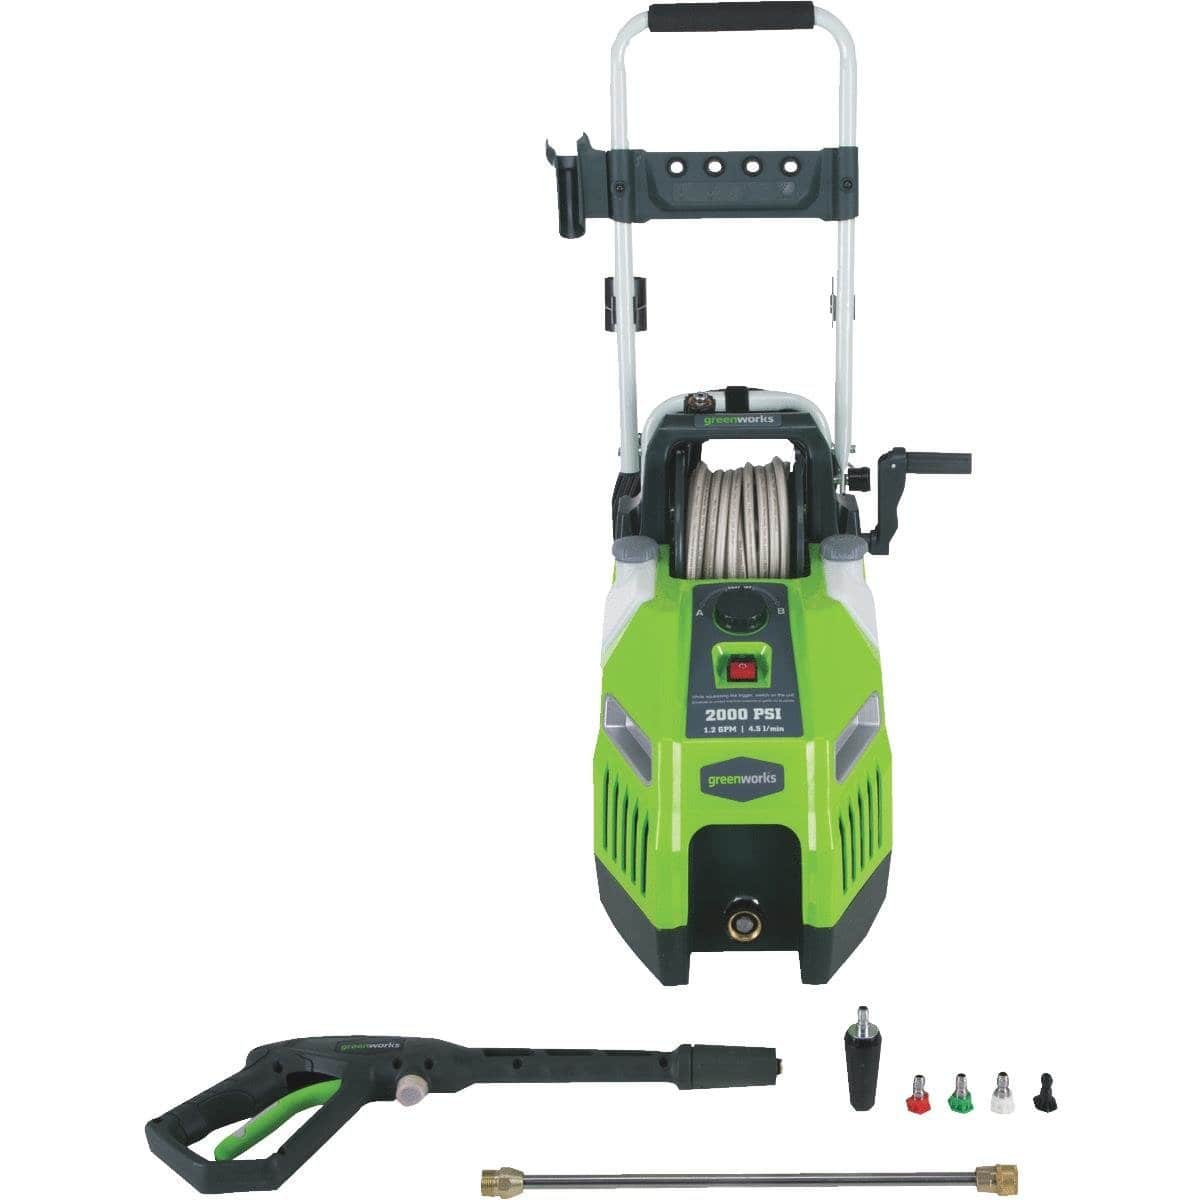 Greenworks 1700 PSI 13 Amp 1.2 GPM Pressure Washer with Hose Reel GPW1702 $92.5